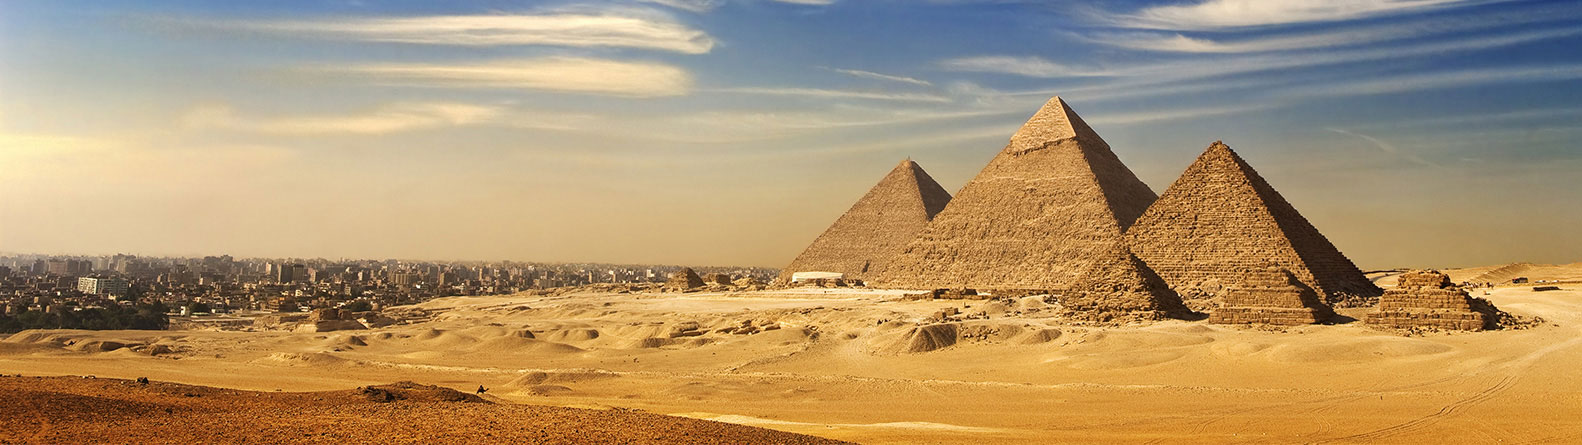 Why are their pyramids all over the world? -